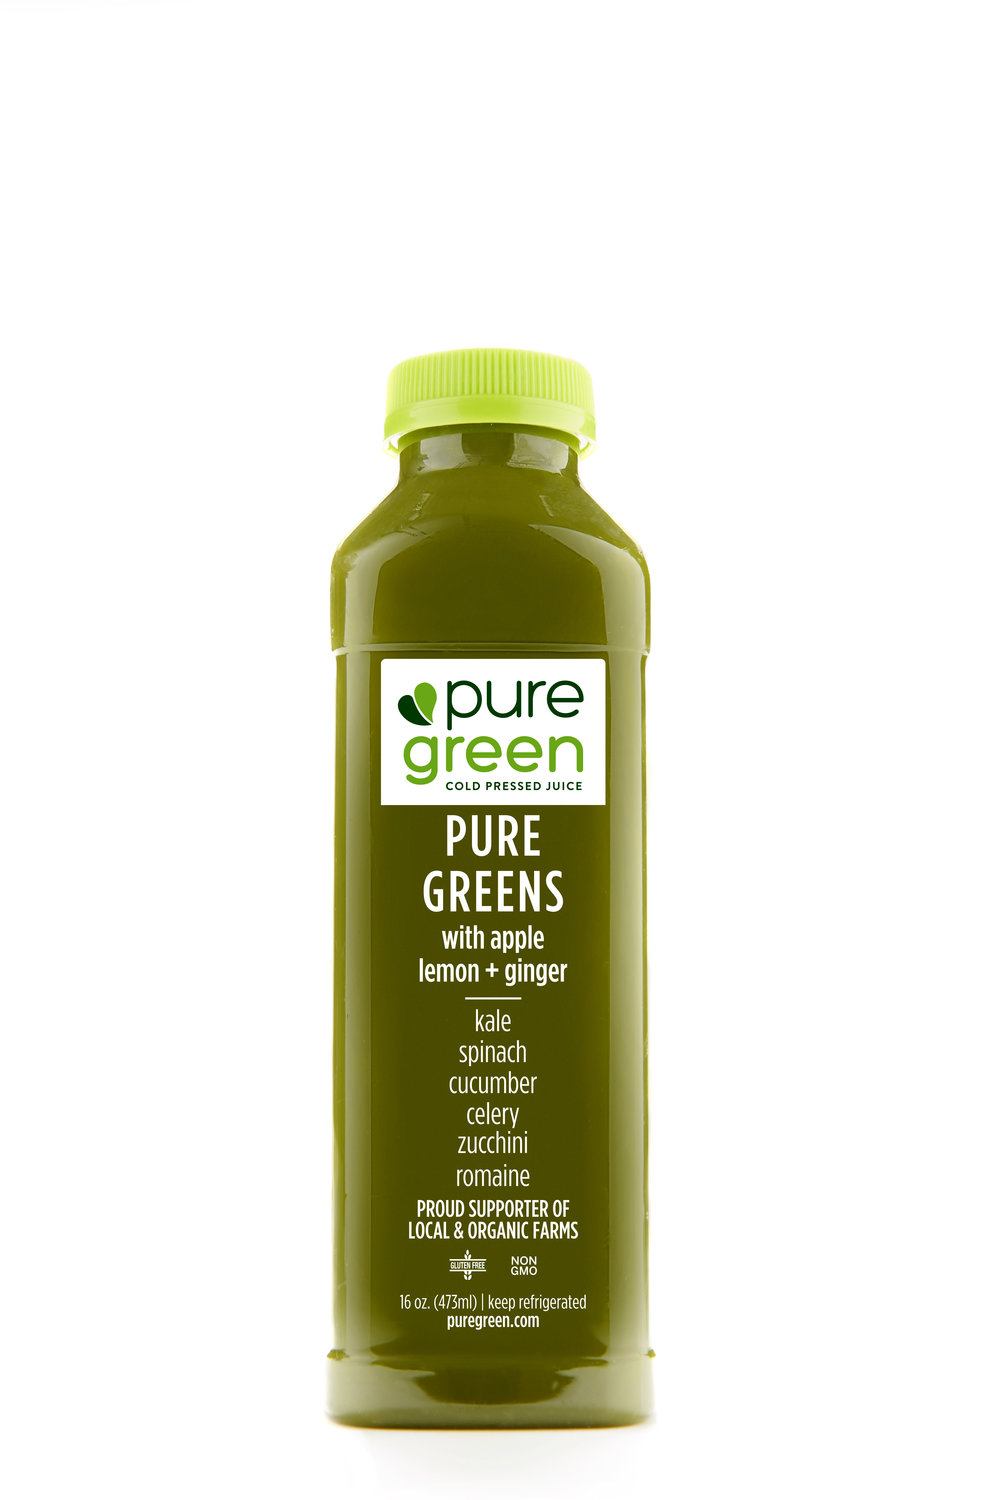 Pure+Greens+Apple+Lemon+Ginger+Cold+Pressed+Juice.jpg